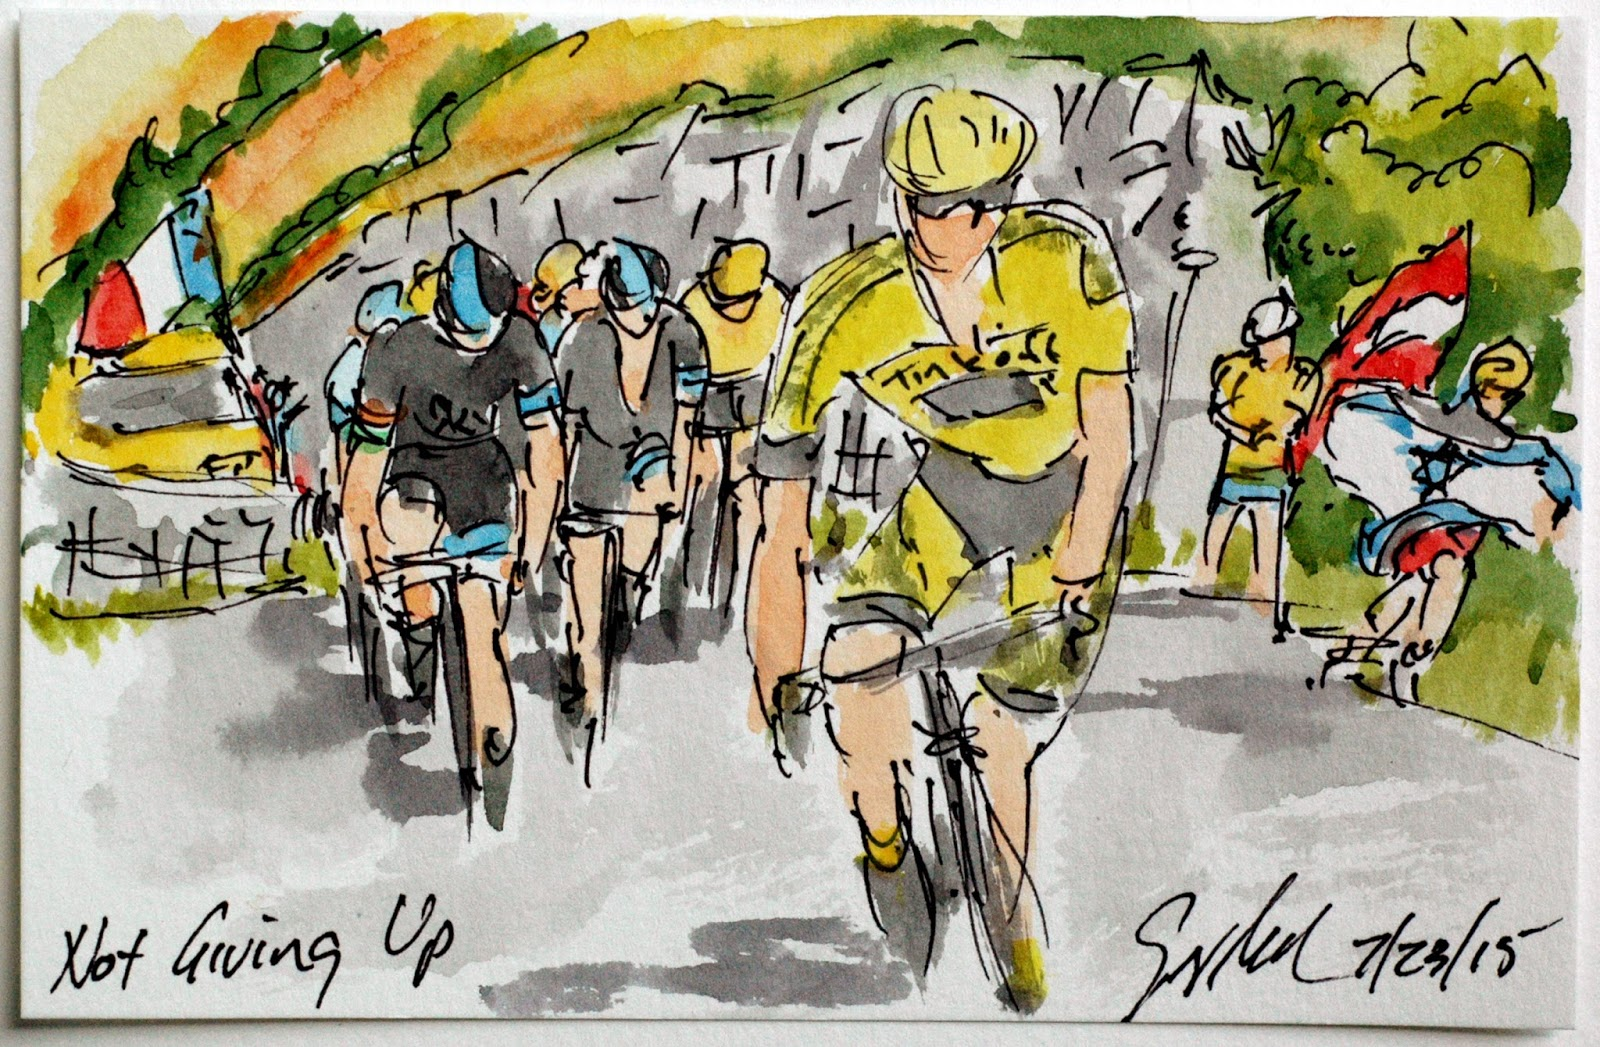 The Art of Cycling: Tour de France, Stage 18: Not Giving Up